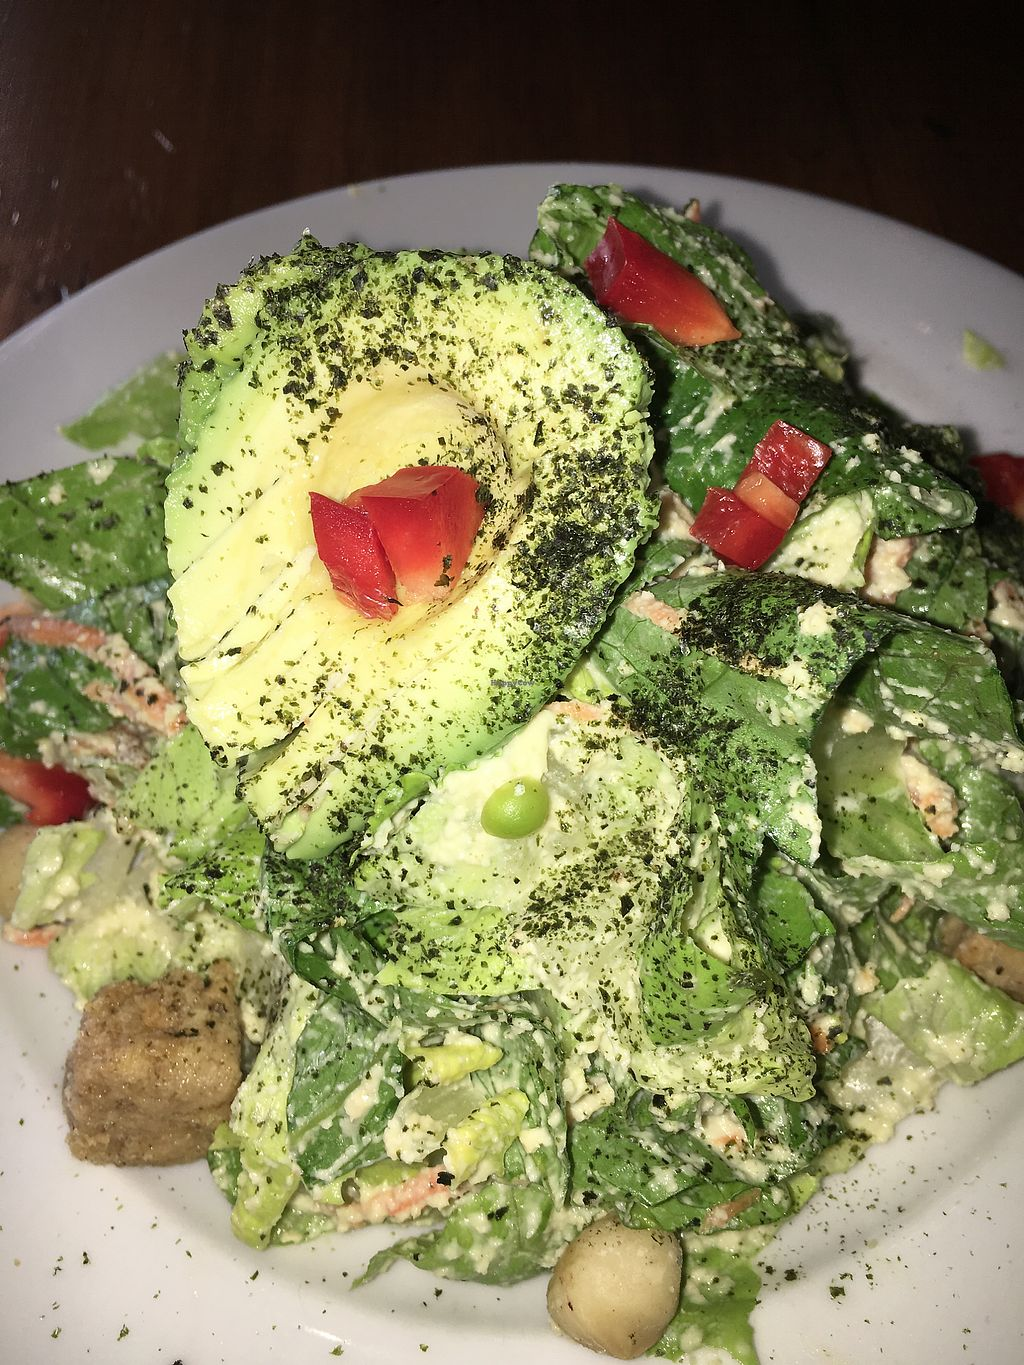 "Photo of Sanctuary Bistro  by <a href=""/members/profile/daroff"">daroff</a> <br/>Macadamia Miso Salad <br/> November 11, 2017  - <a href='/contact/abuse/image/48567/324097'>Report</a>"